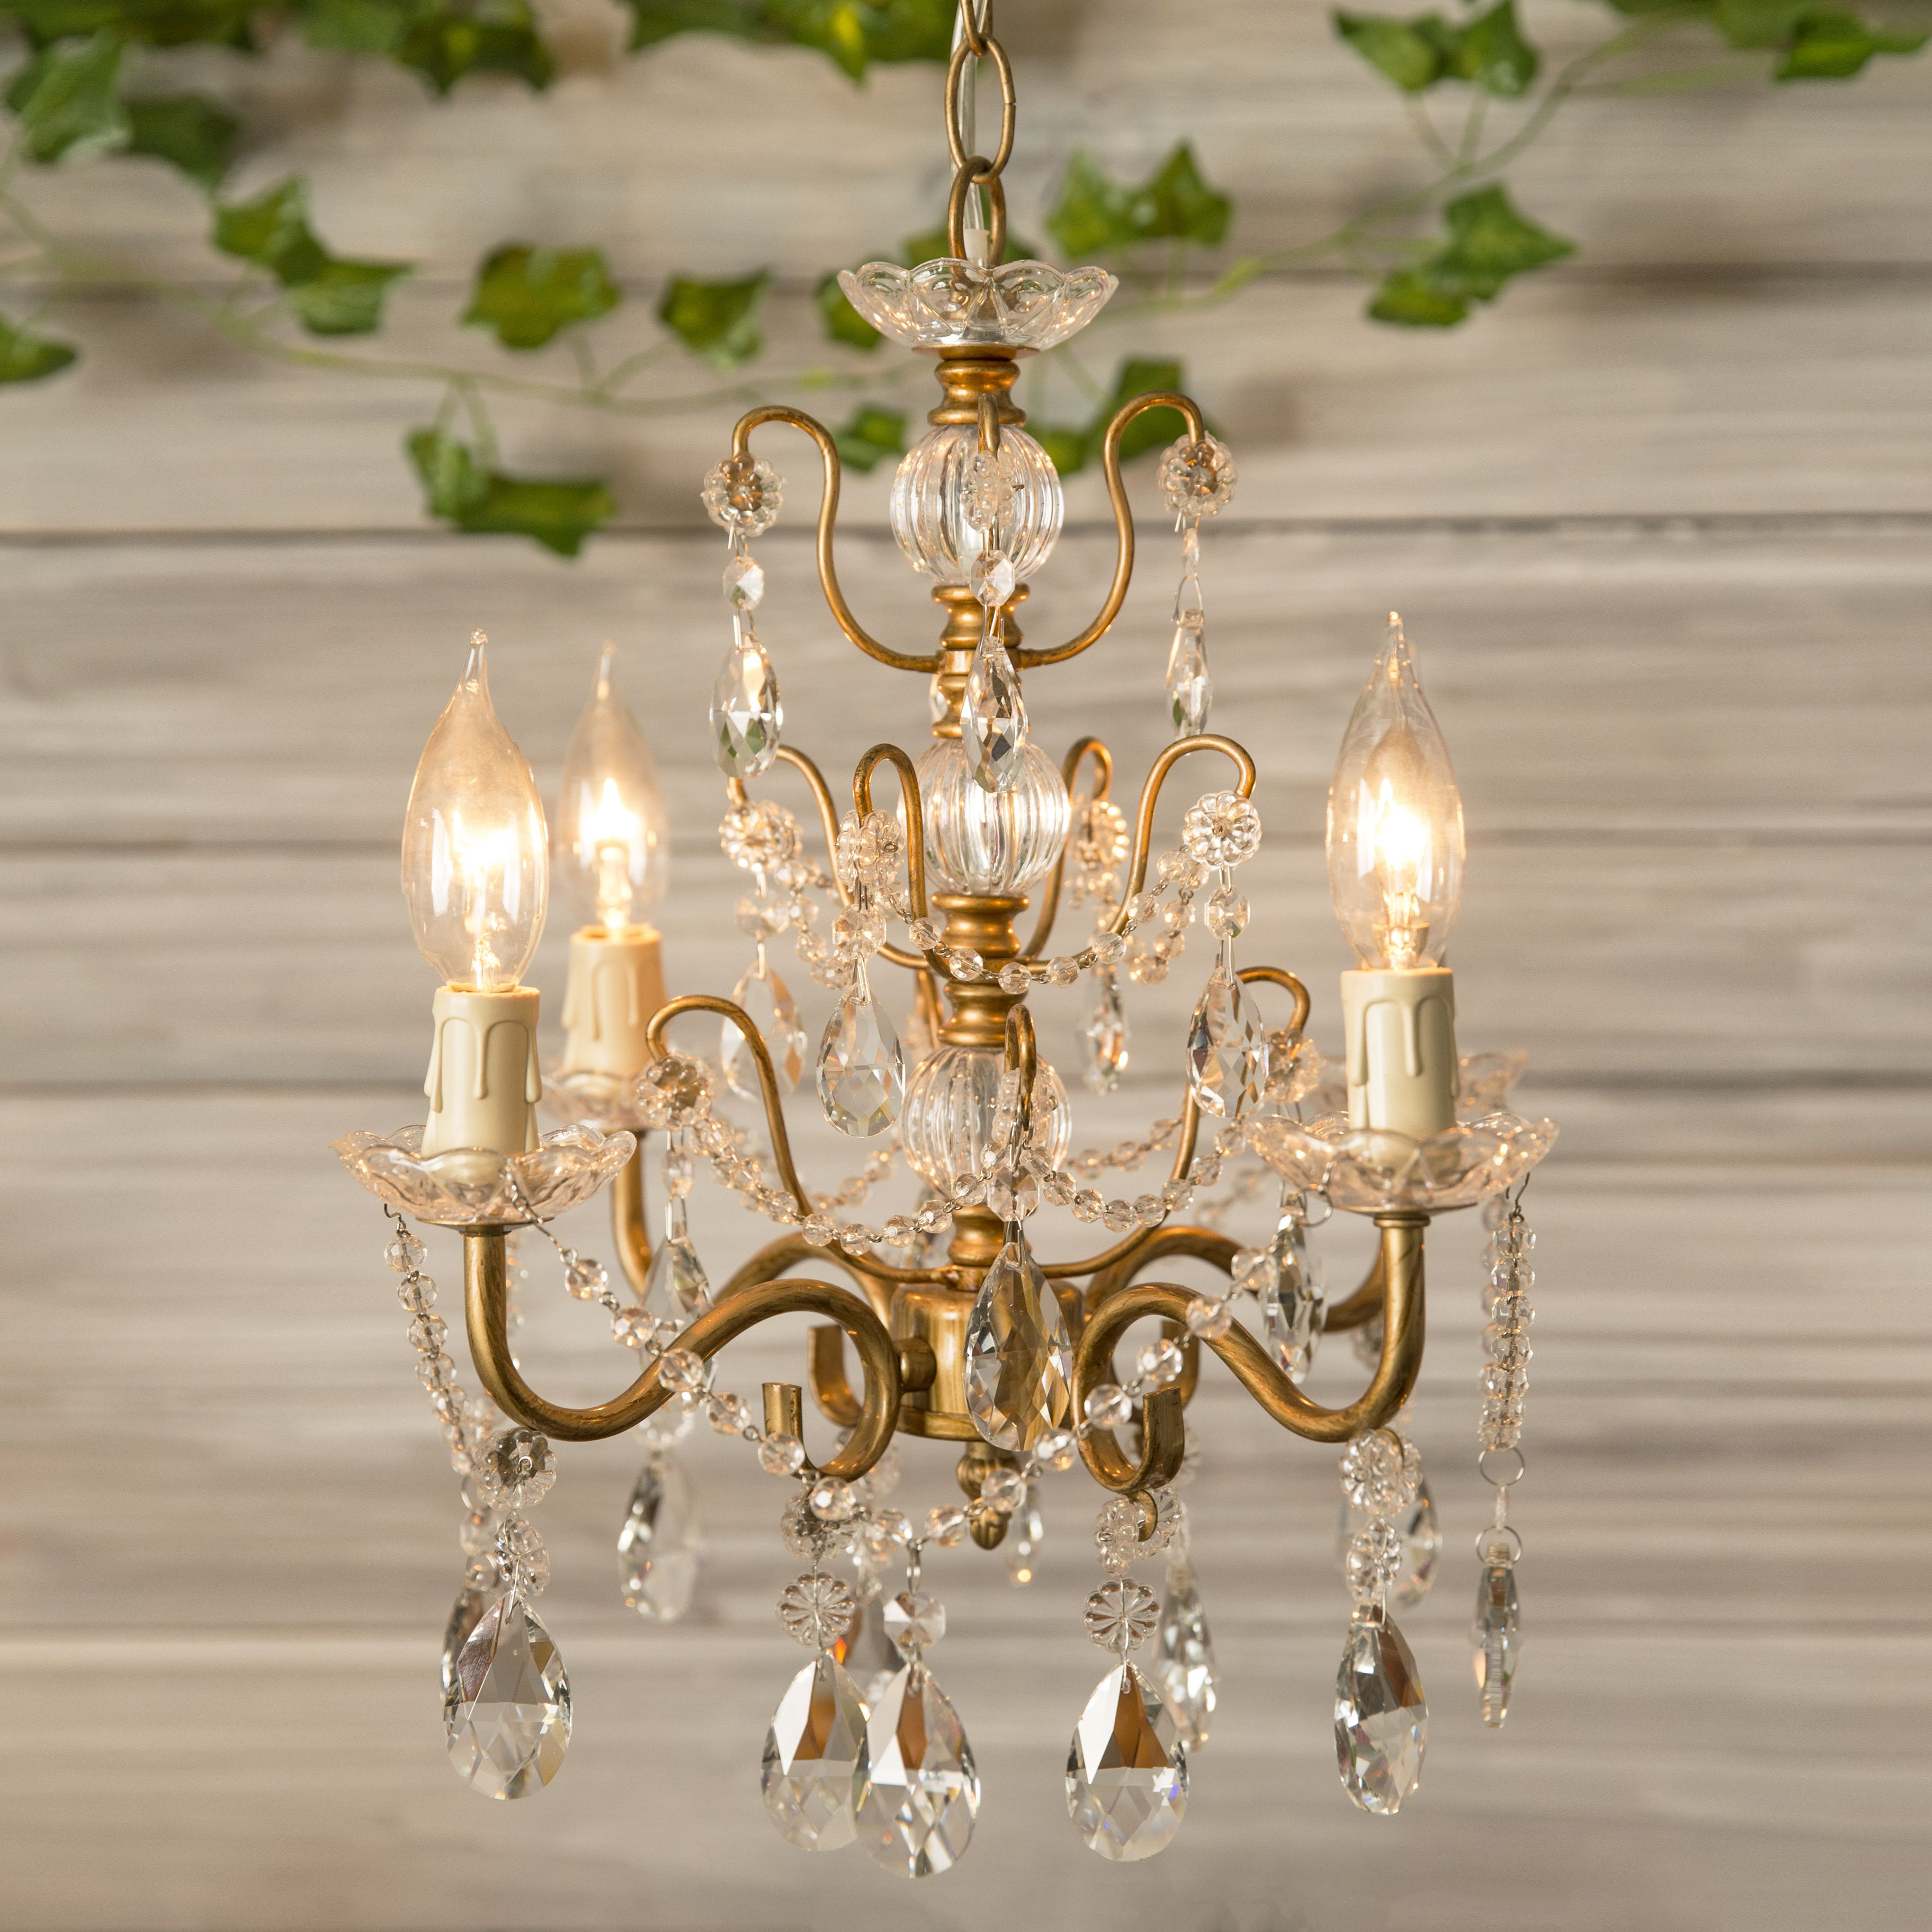 4 Light Shabby Chic Crystal Plug In Chandelier Gold Candle